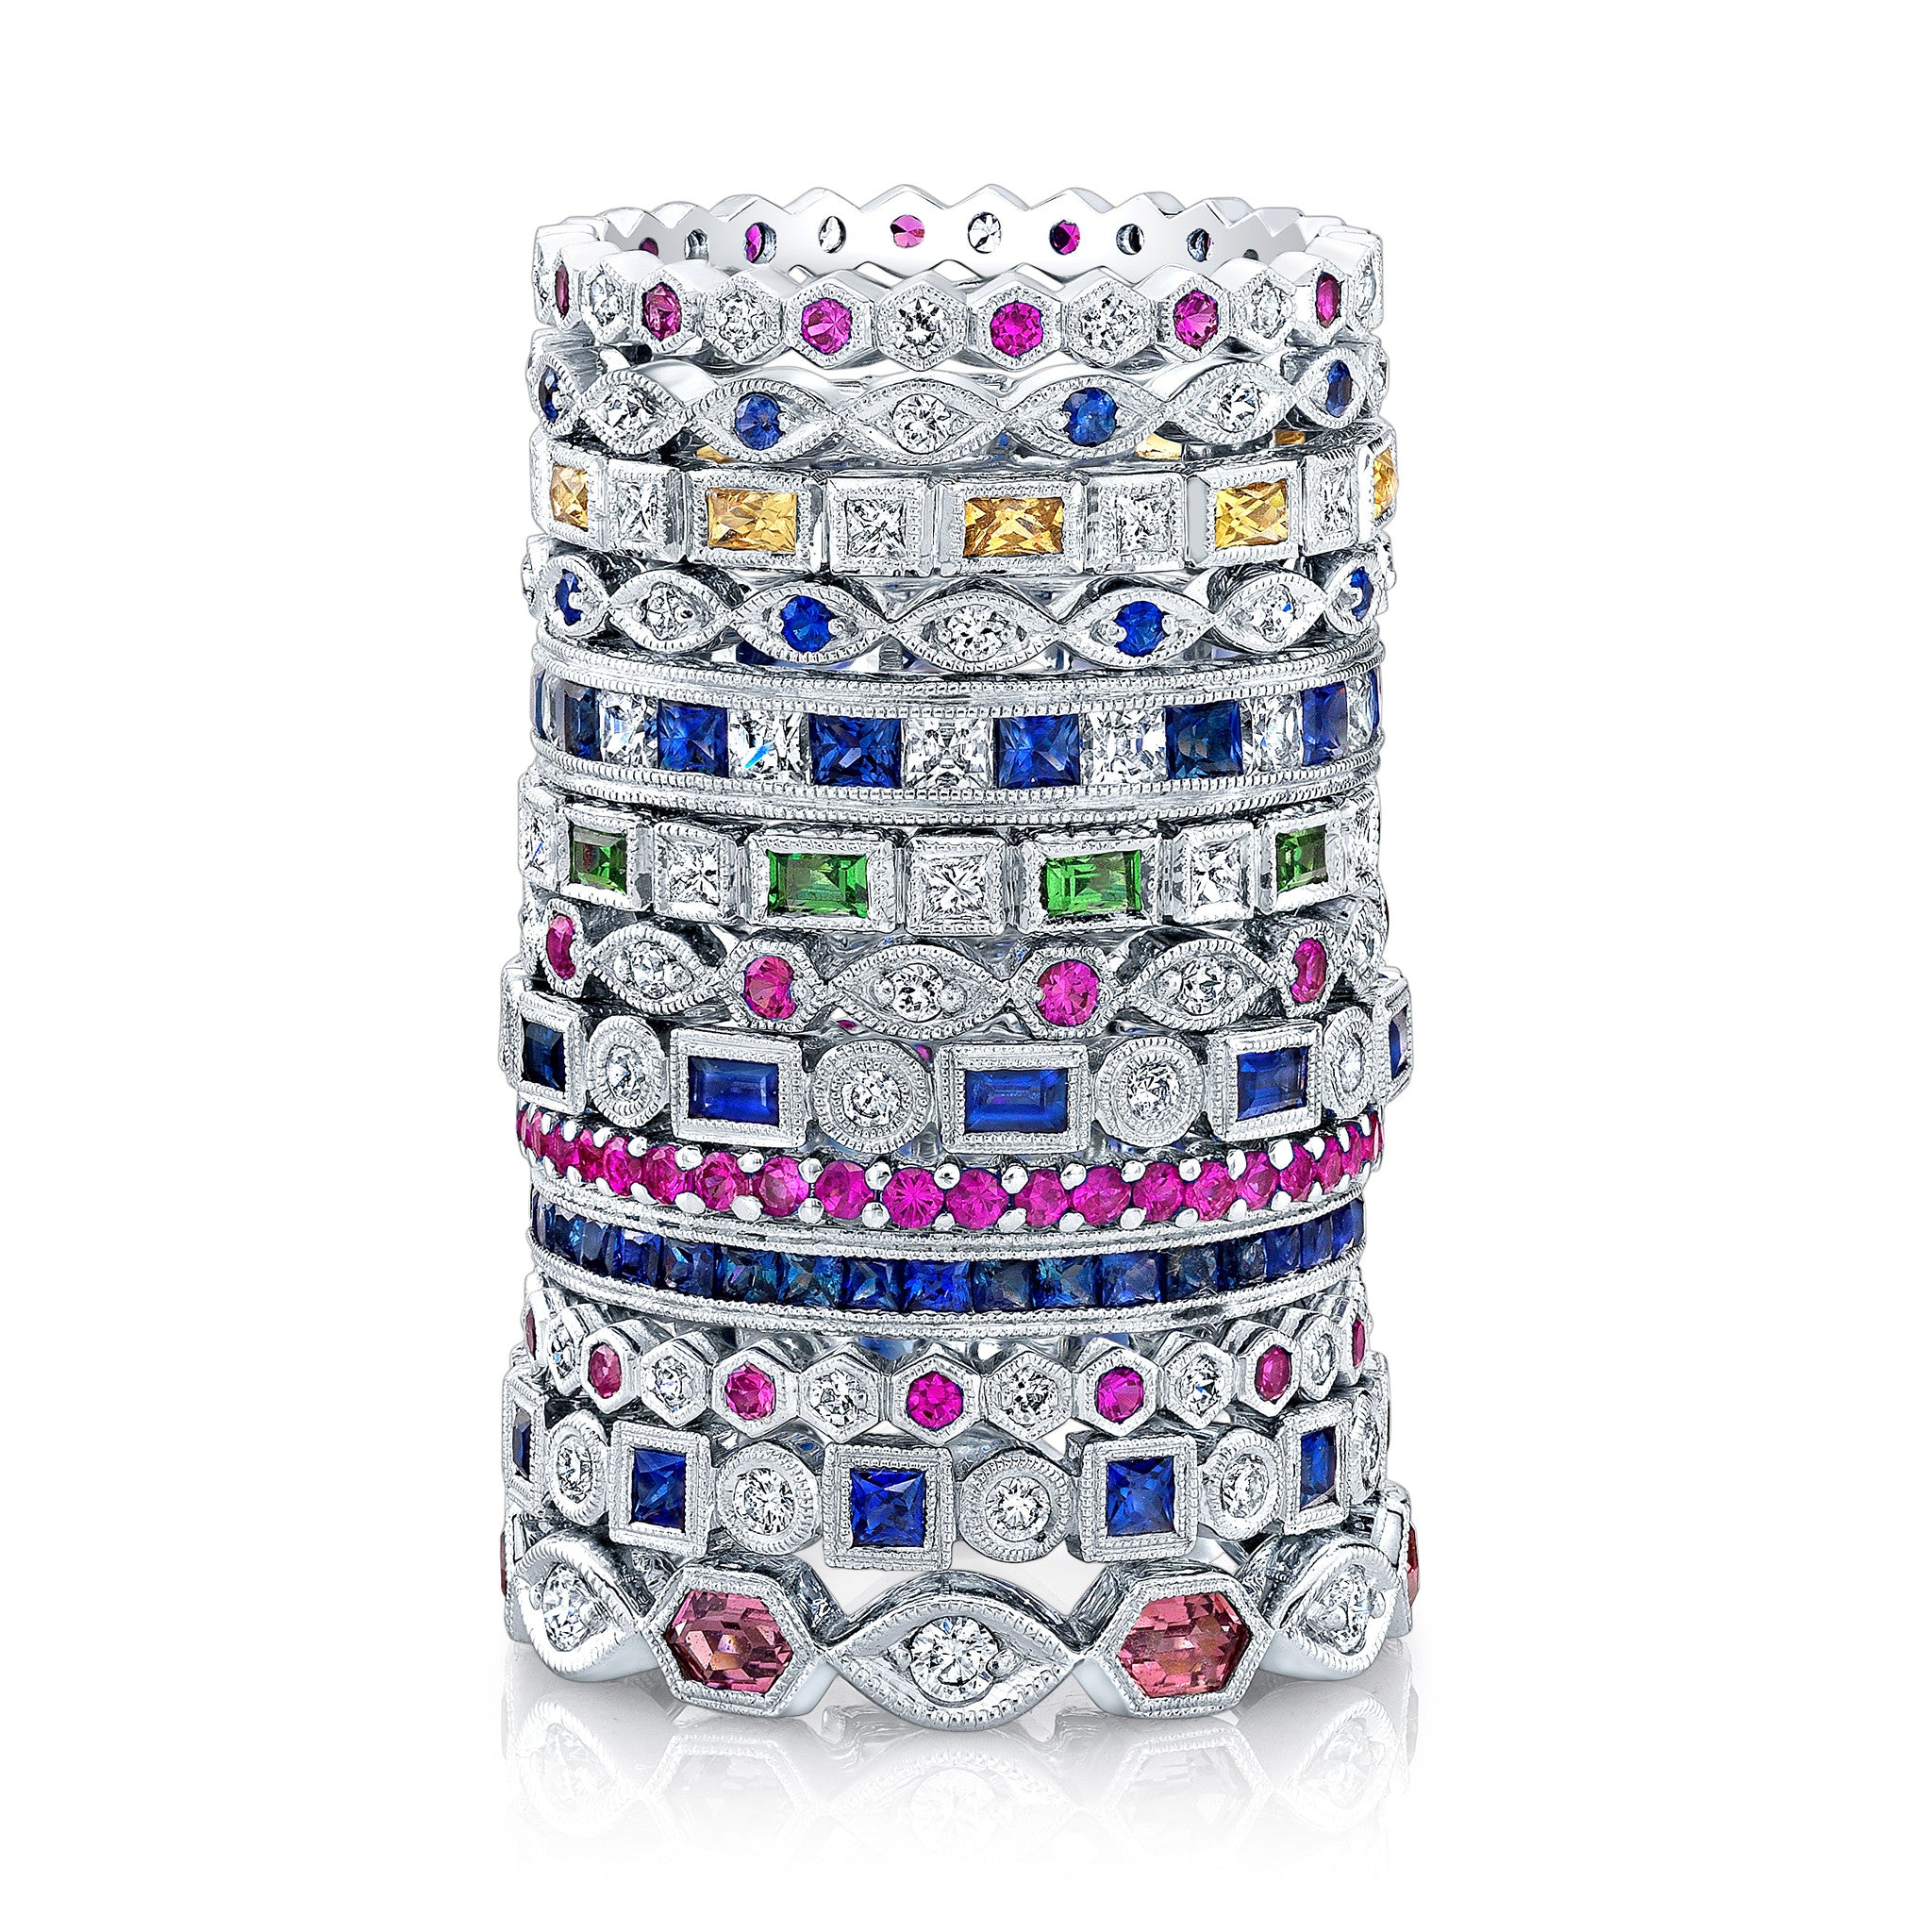 platinum in band ring cf type approximately jewellery review collection vvs and diamond products legacy pink with approxmately weight carat colour eternity rings clarity gem vendor comes g oliver bands total appraisal co sapphire tiffany size